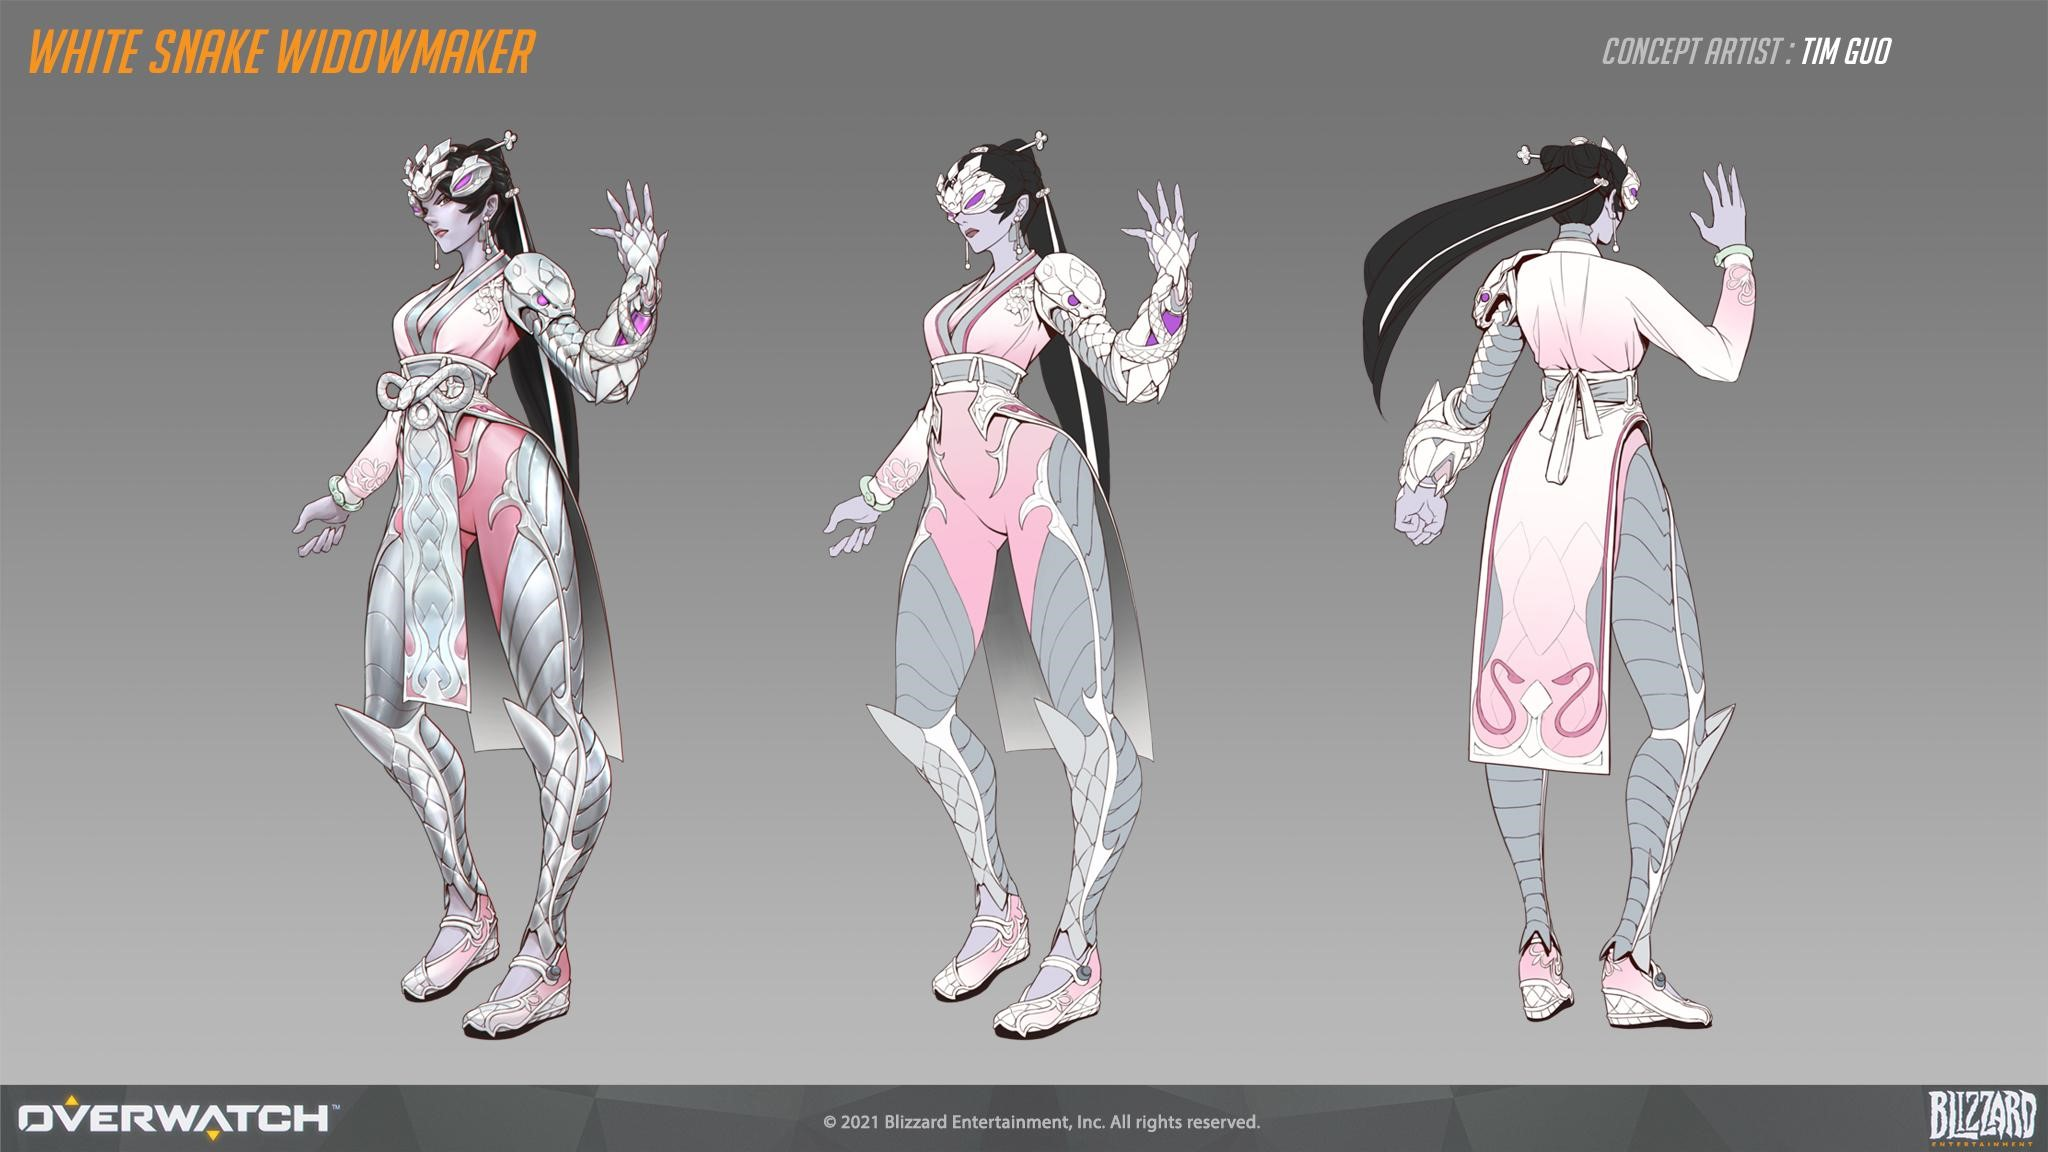 Pale Serpent Widowmaker Concept Art